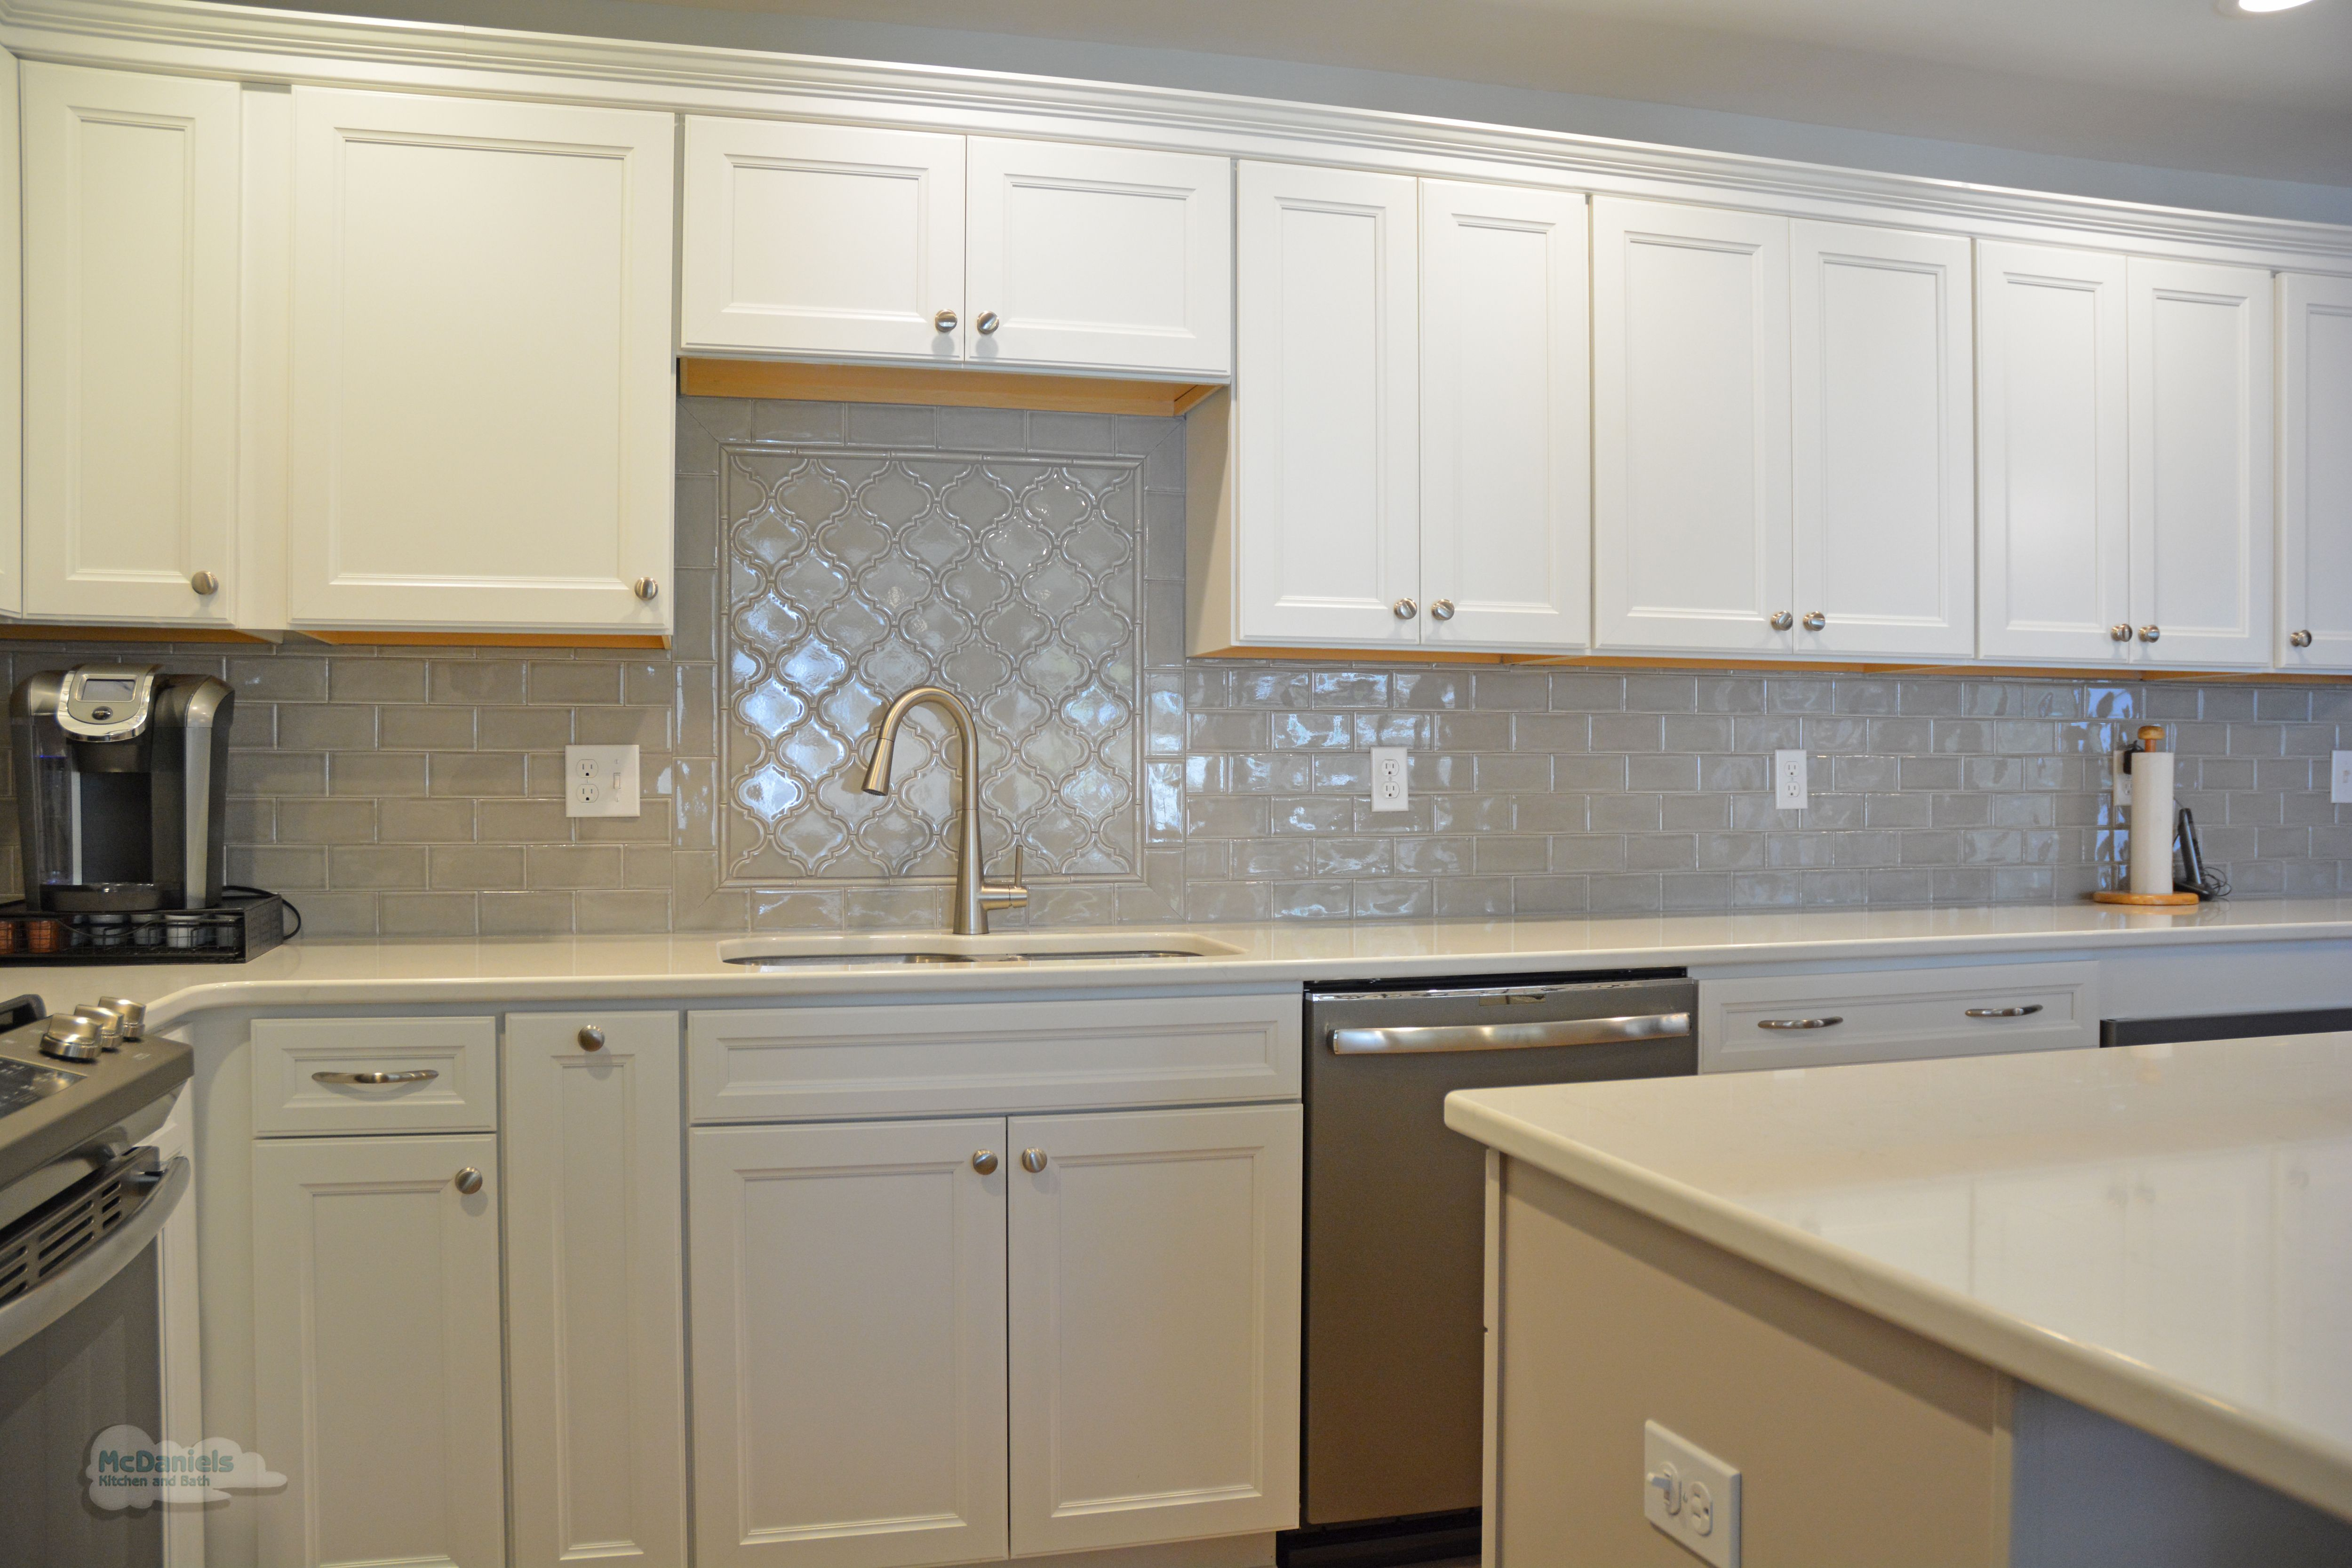 Topknobs Hardware Beautifully Accessorizes The Cabinetry And Complements This Bright Transitional Kitchen Design Kitchen And Bath Remodeling Kitchen Remodel